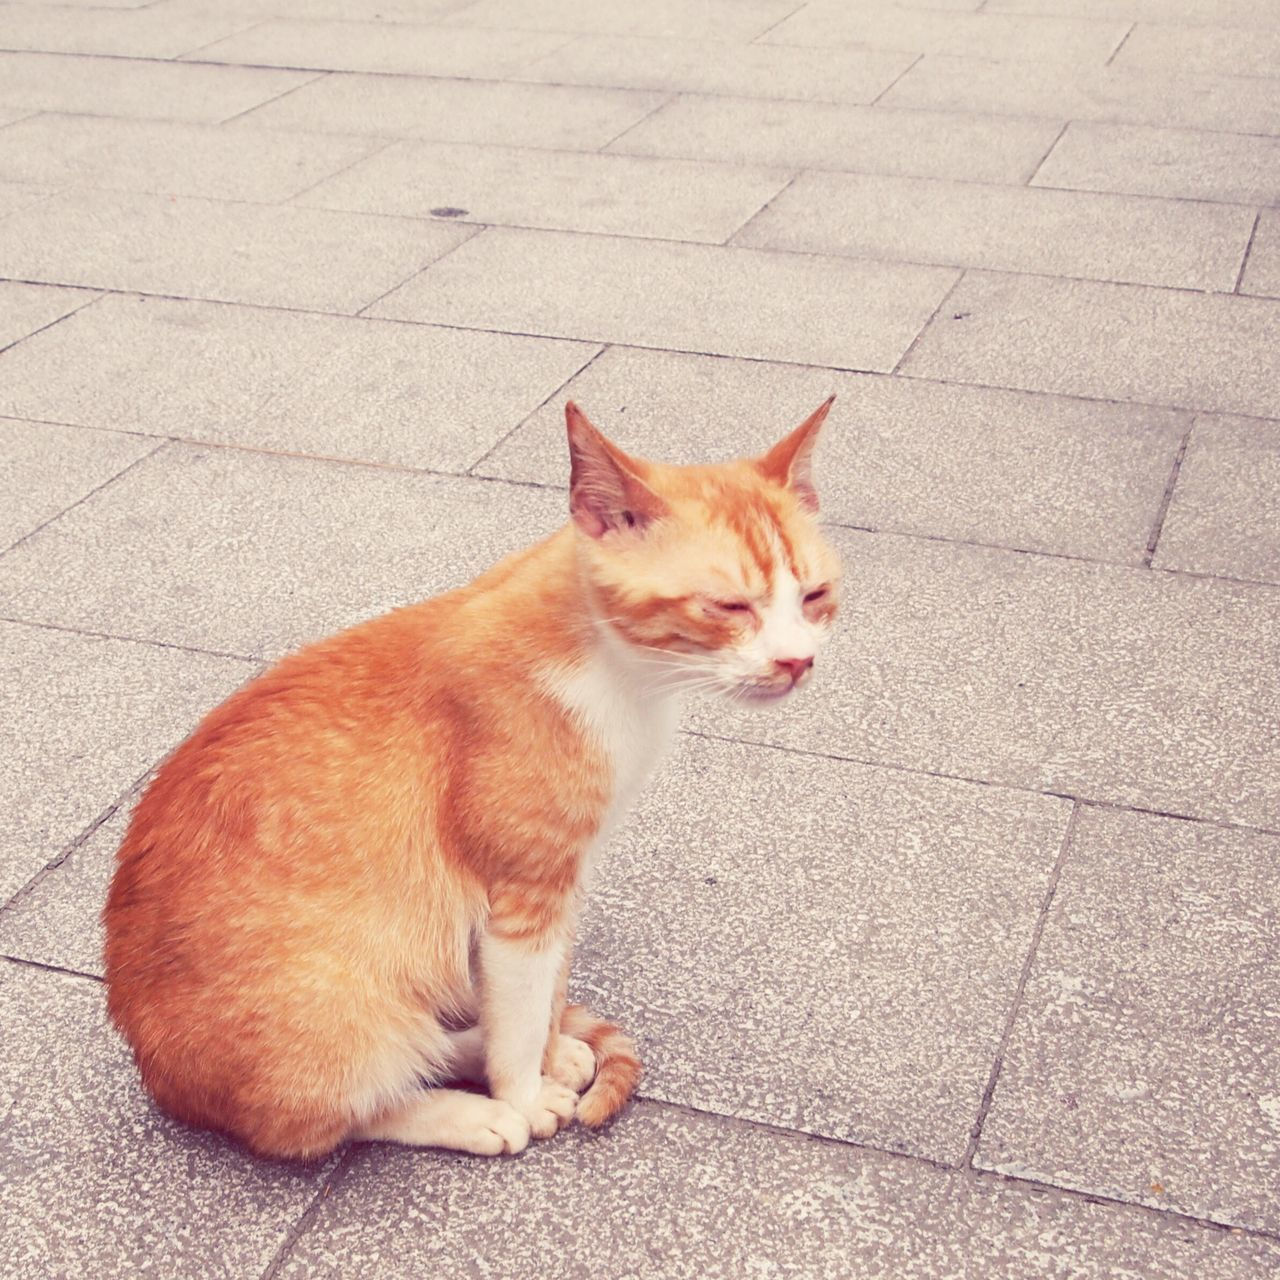 Don't you dare fall asleep when I lecture you!! Pets Domestic Cat Domestic Animals Animal Themes One Animal Mammal Feline Cat Lying Down No People Full Length Ginger Cat Outdoors Day Street Cat Street Cats Close-up Lifestyles Taipei Taipei,Taiwan